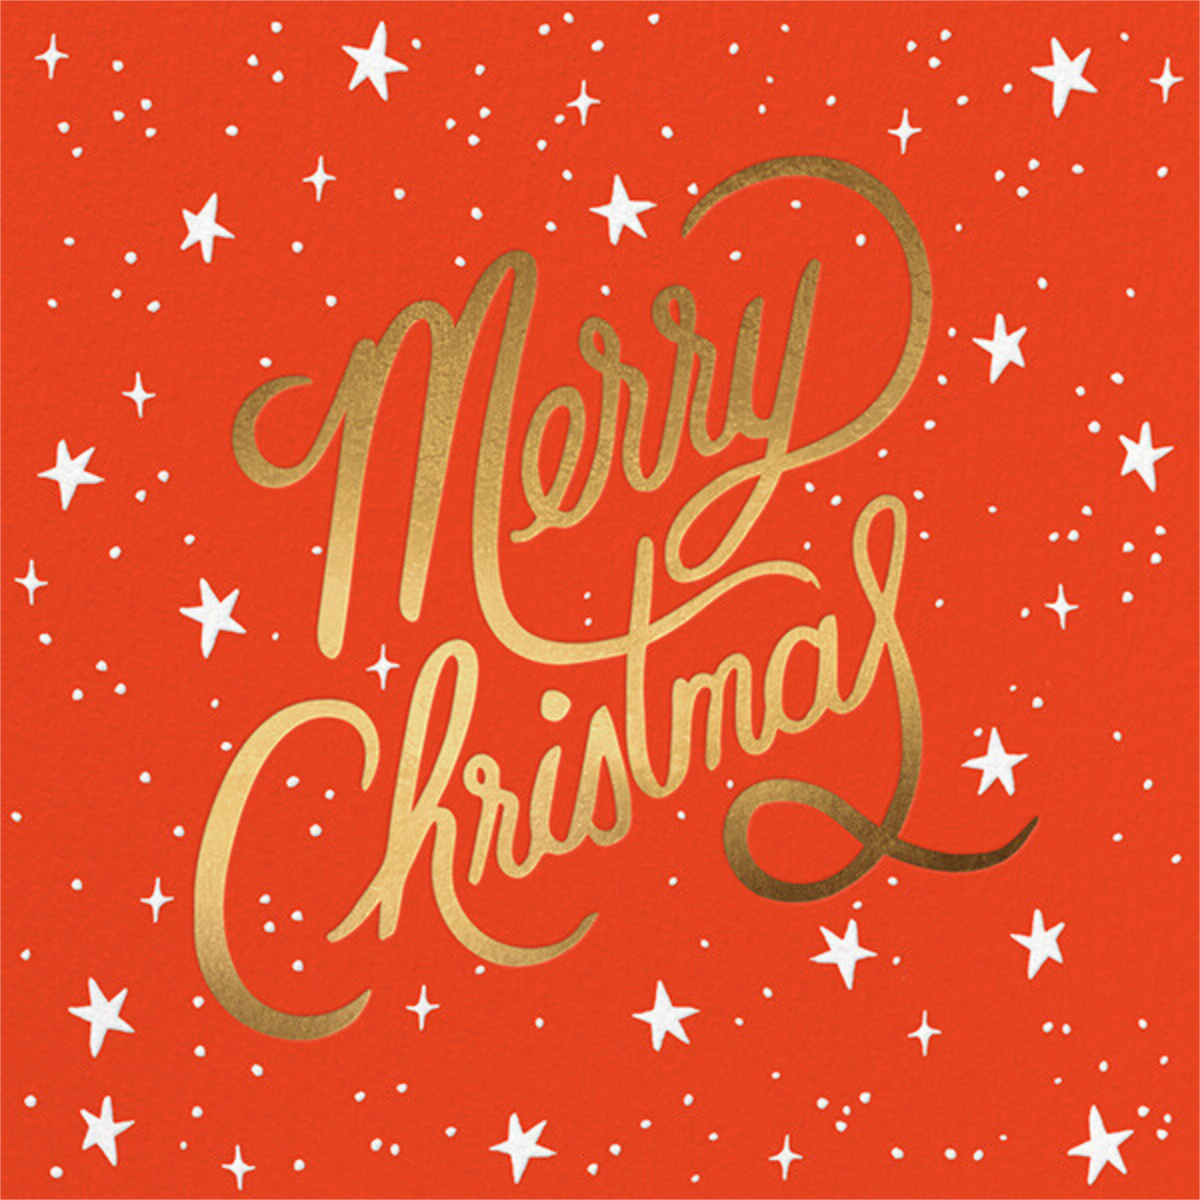 Merry Christmas Script - Rifle Paper Co. - Christmas